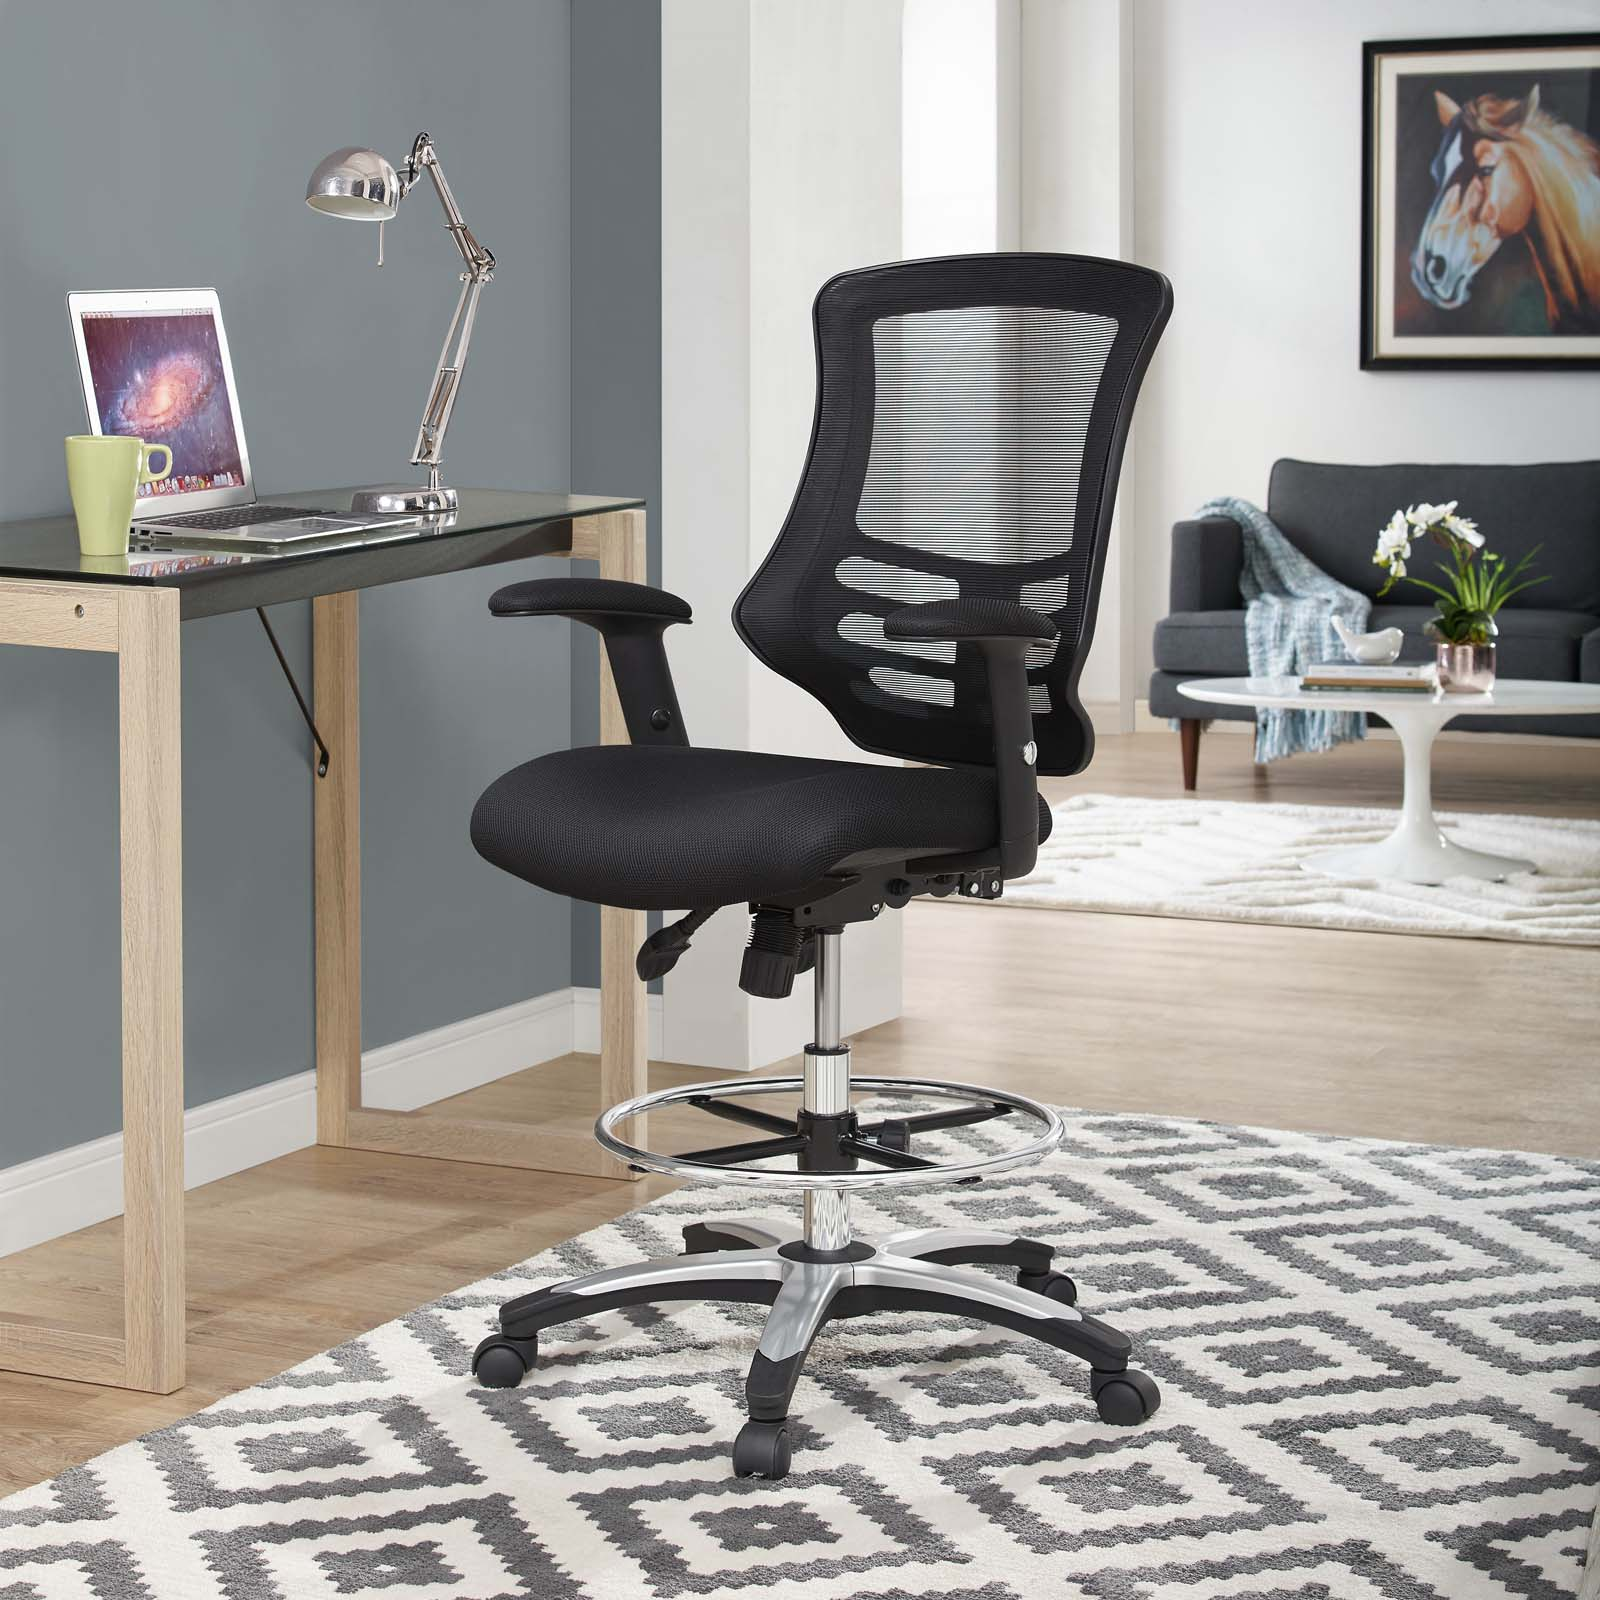 Modway Calibrate Mesh Drafting Chair, Multiple Colors - Walmart.com